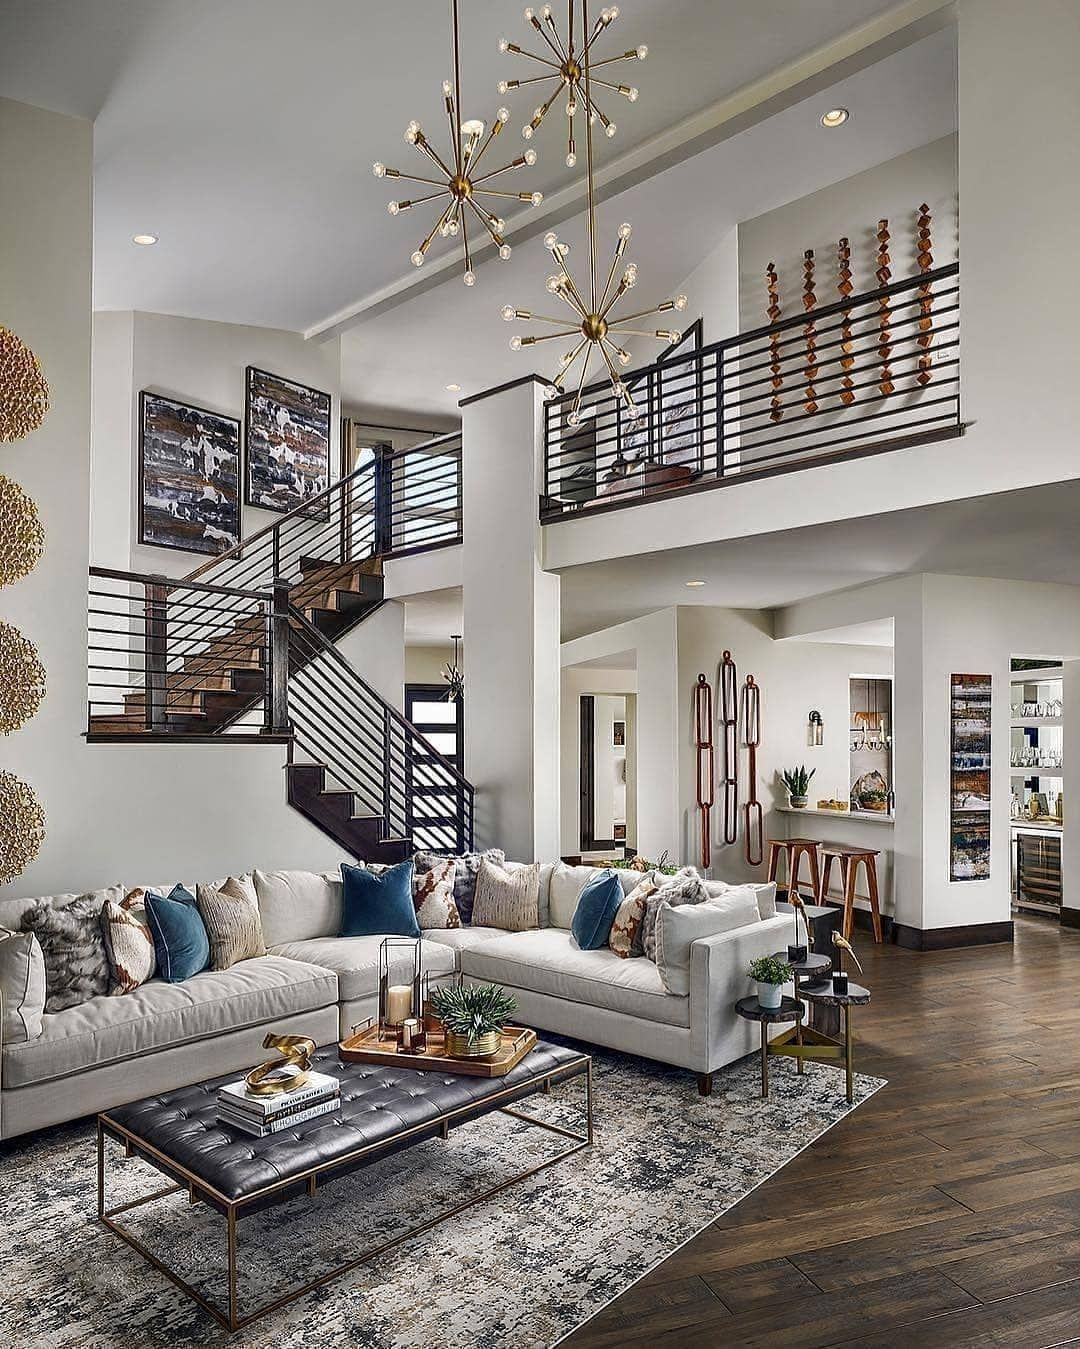 The Controller Ch Fin Contemporary Decor Living Room Luxury House Designs Modern House Design Modern home design ideas for living room